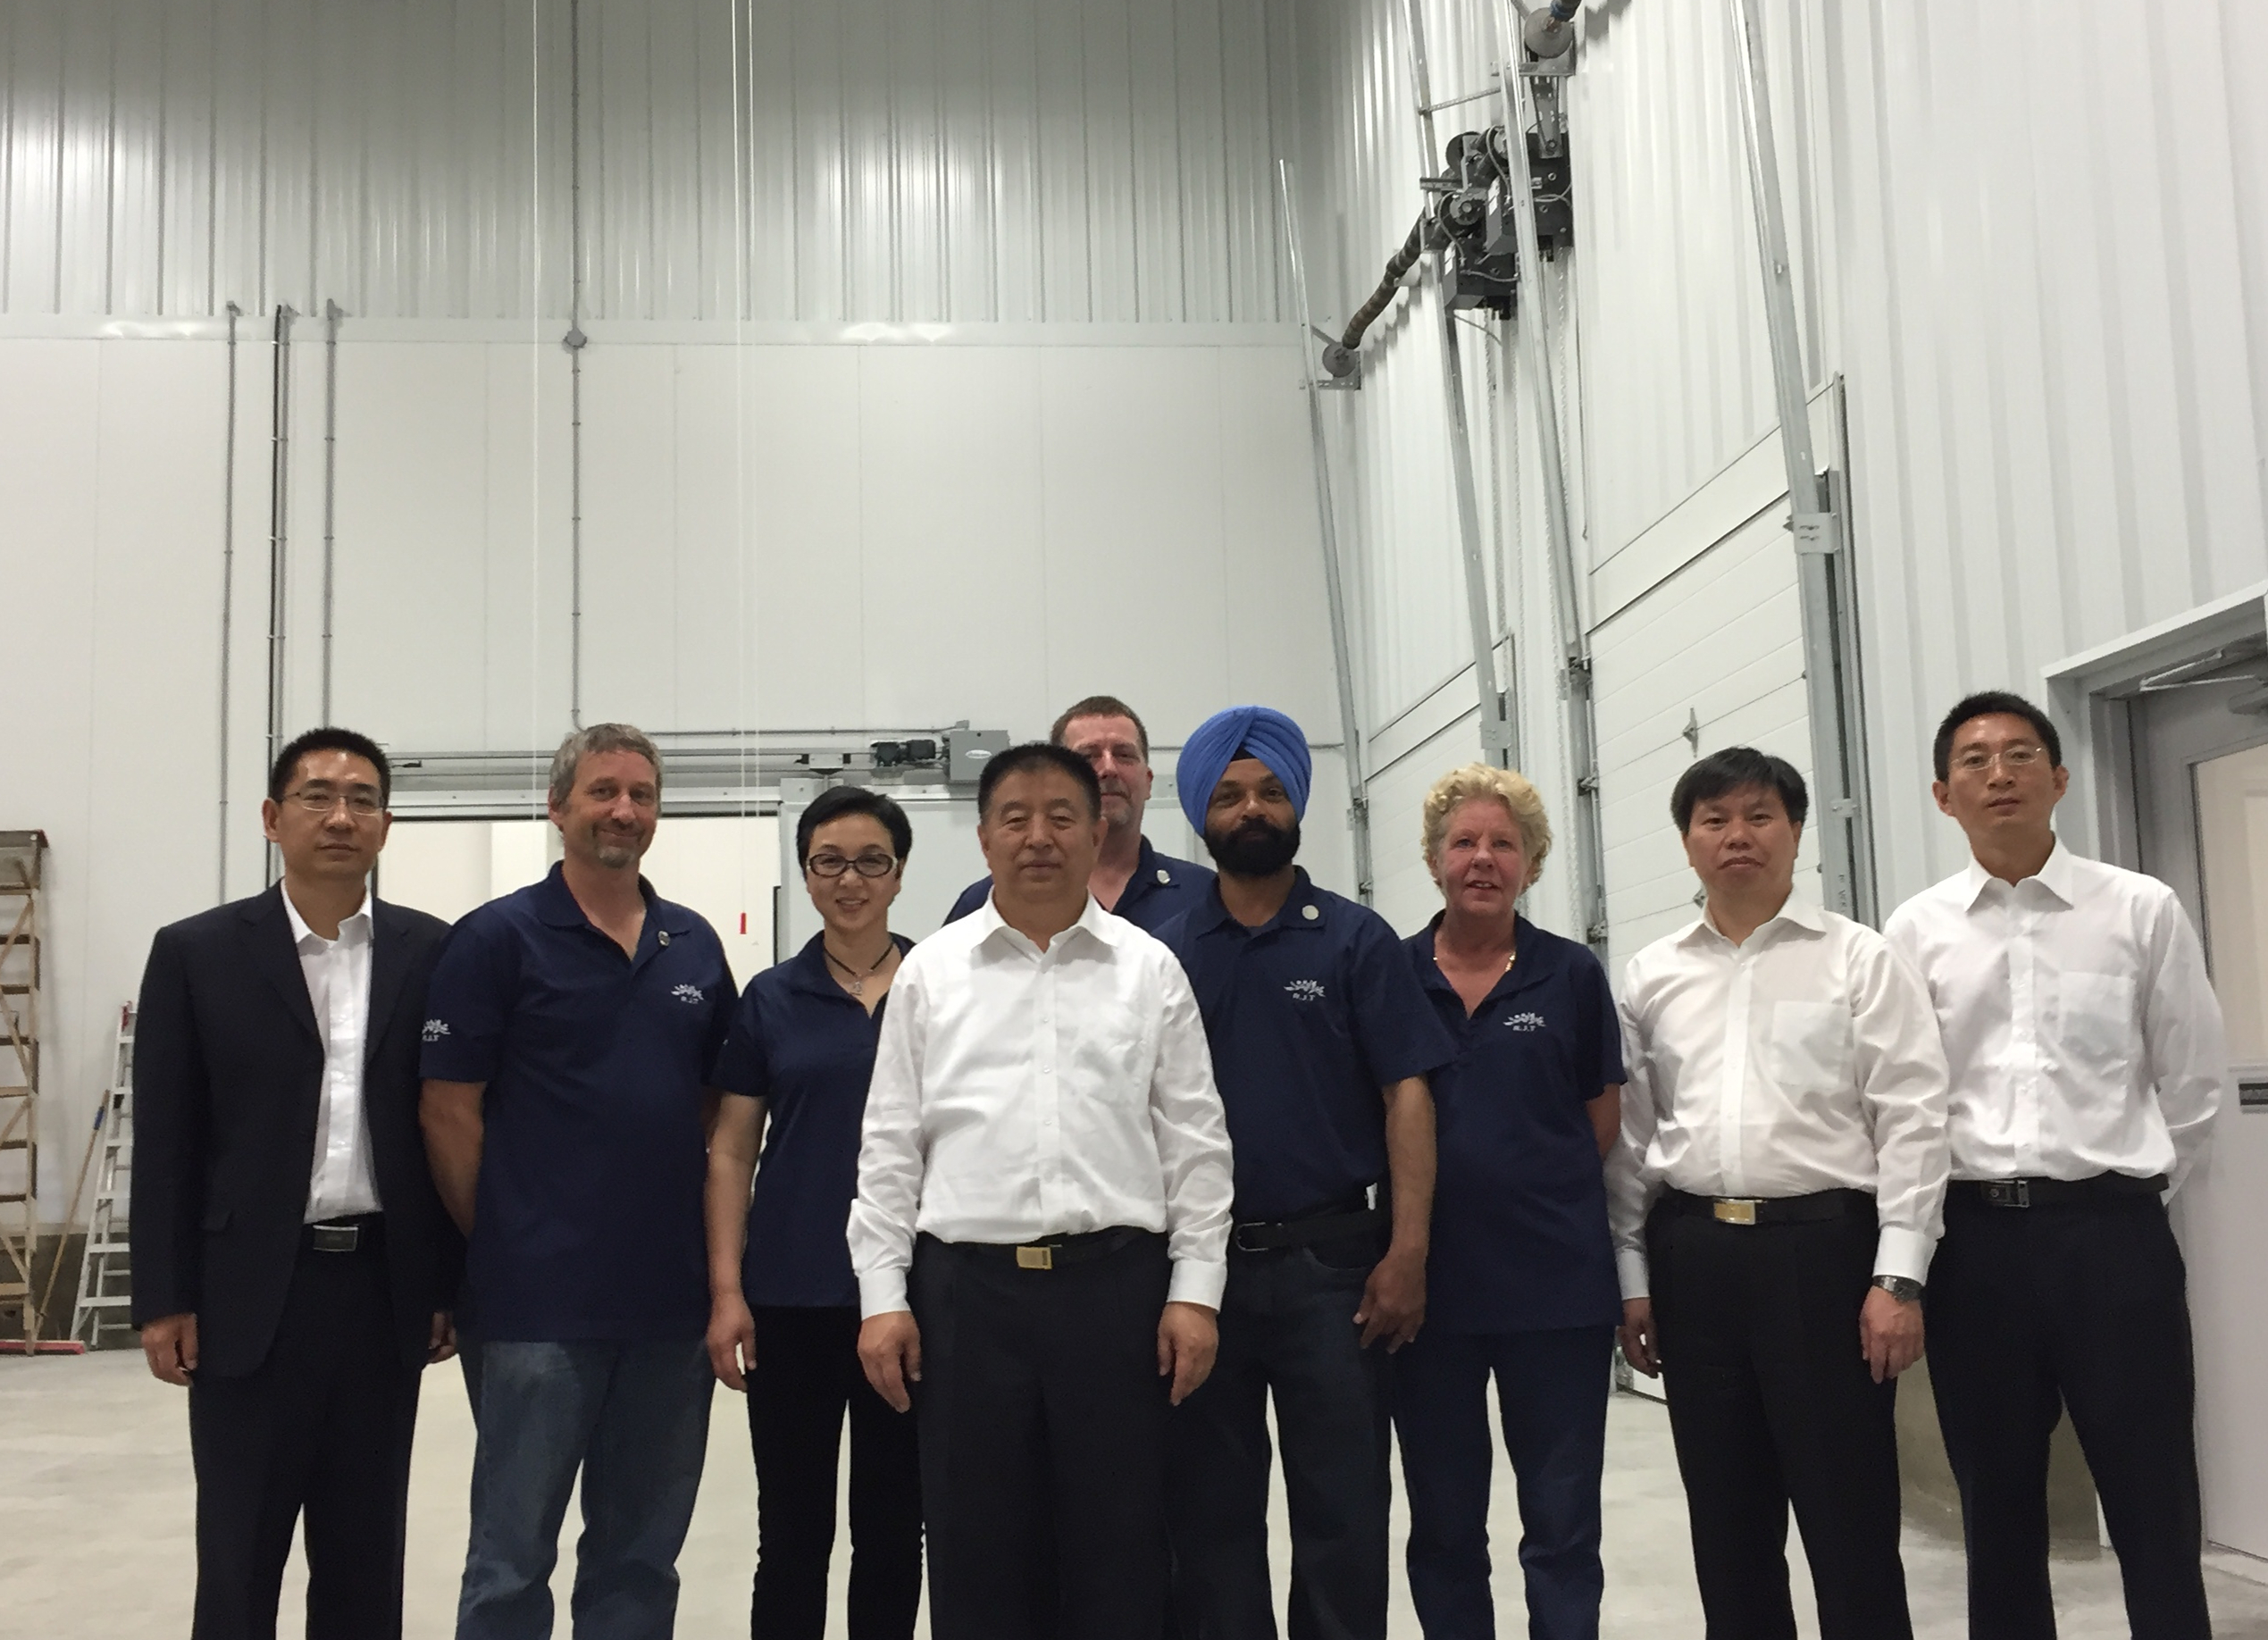 A delegation of State Administration for Industry and Commerce of China visited R.J.T Blueberry Park